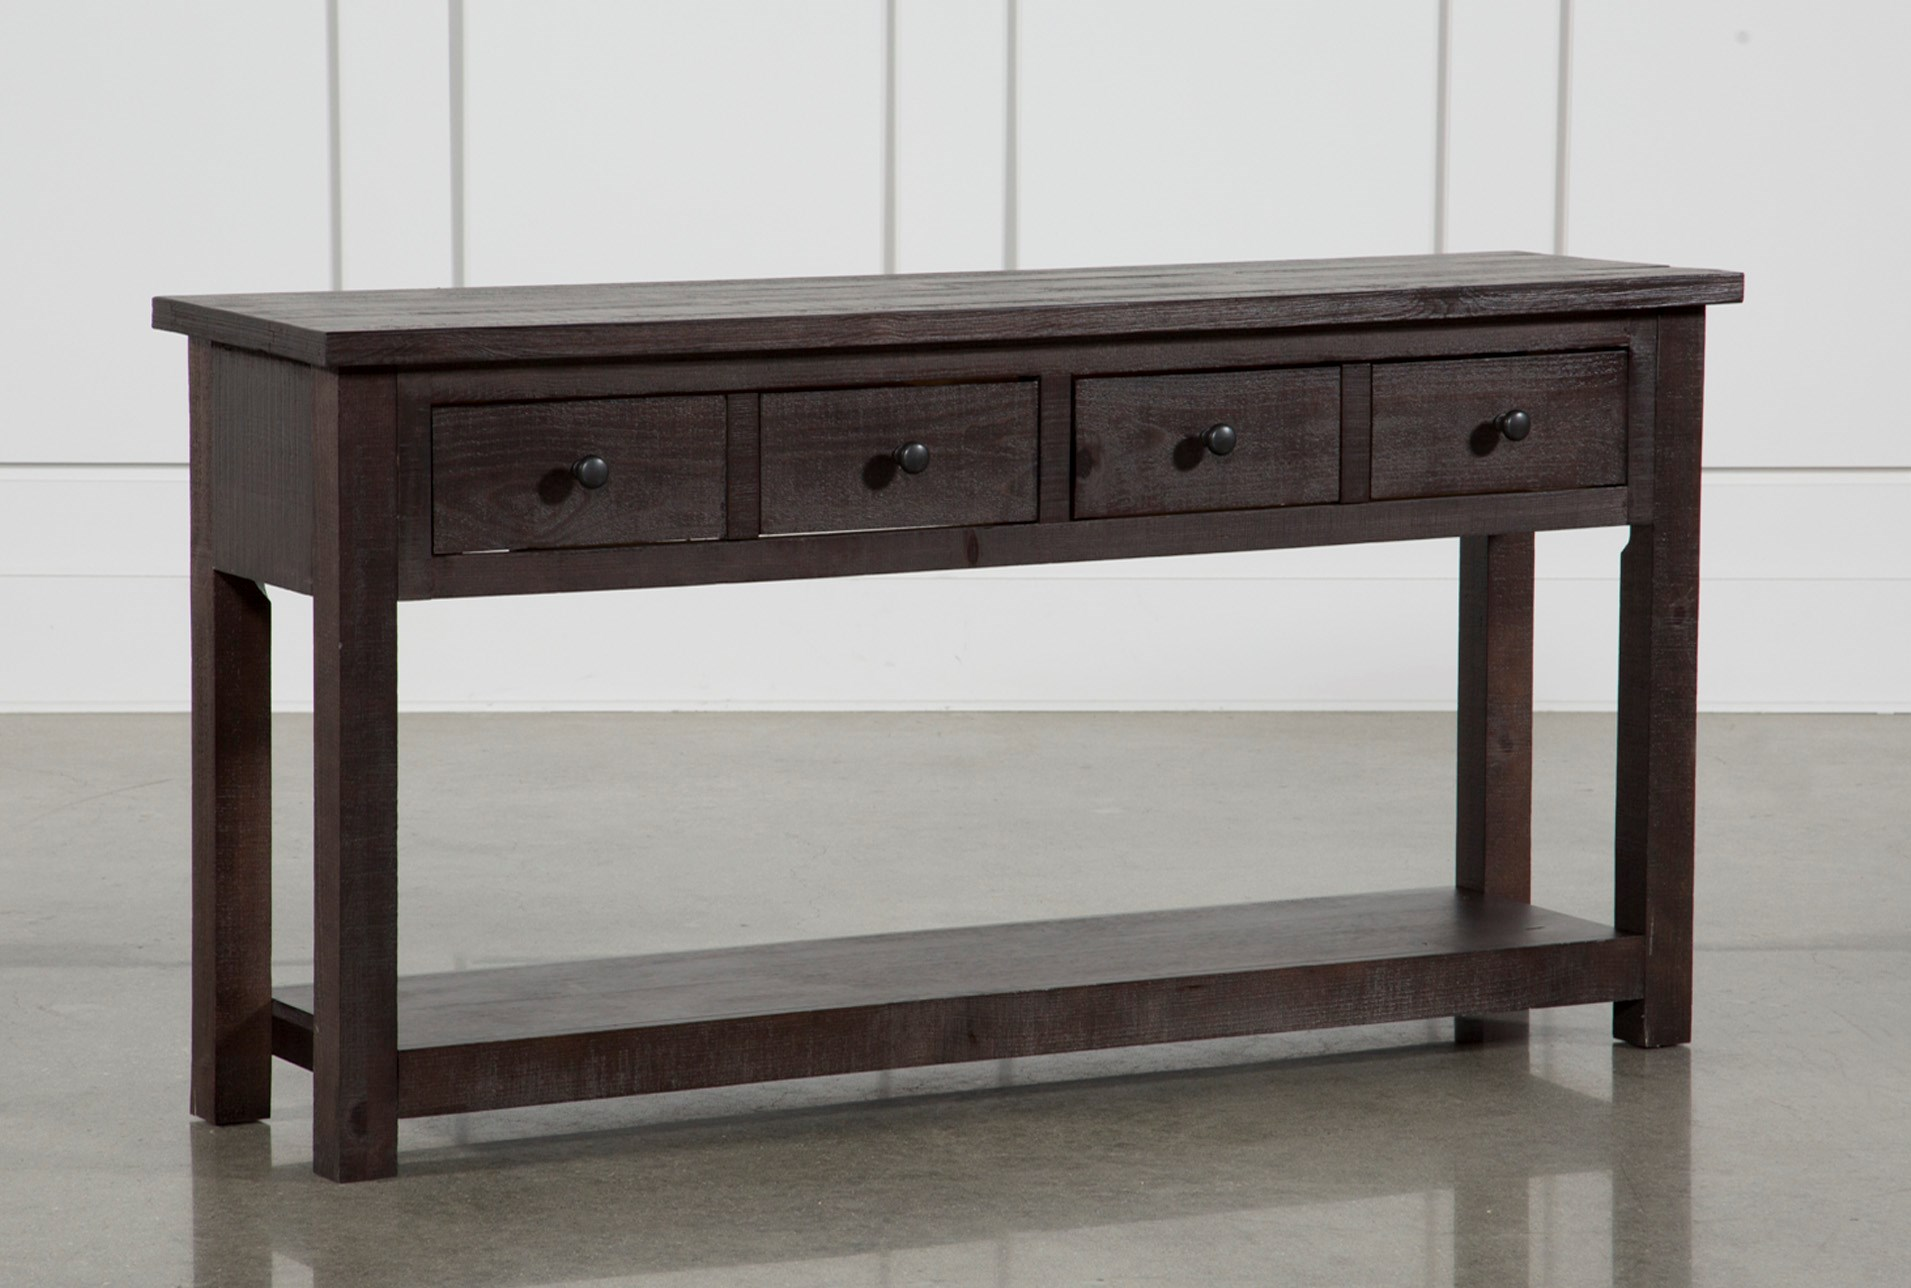 Cameo Sofa Table Qty 1 Has Been Successfully Added To Your Cart